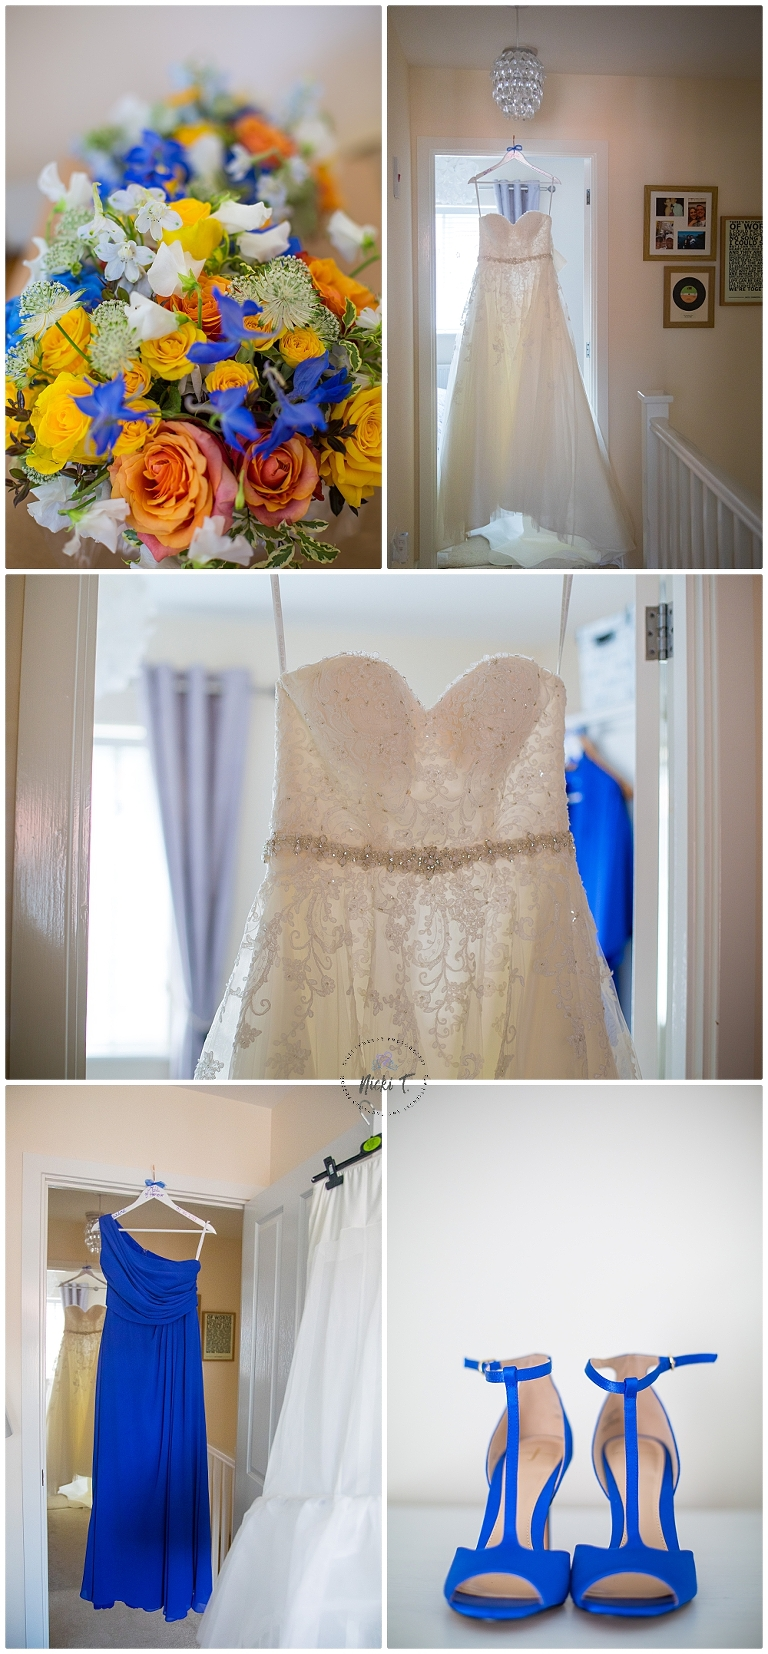 Bride's shoes, flowers and wedding dress